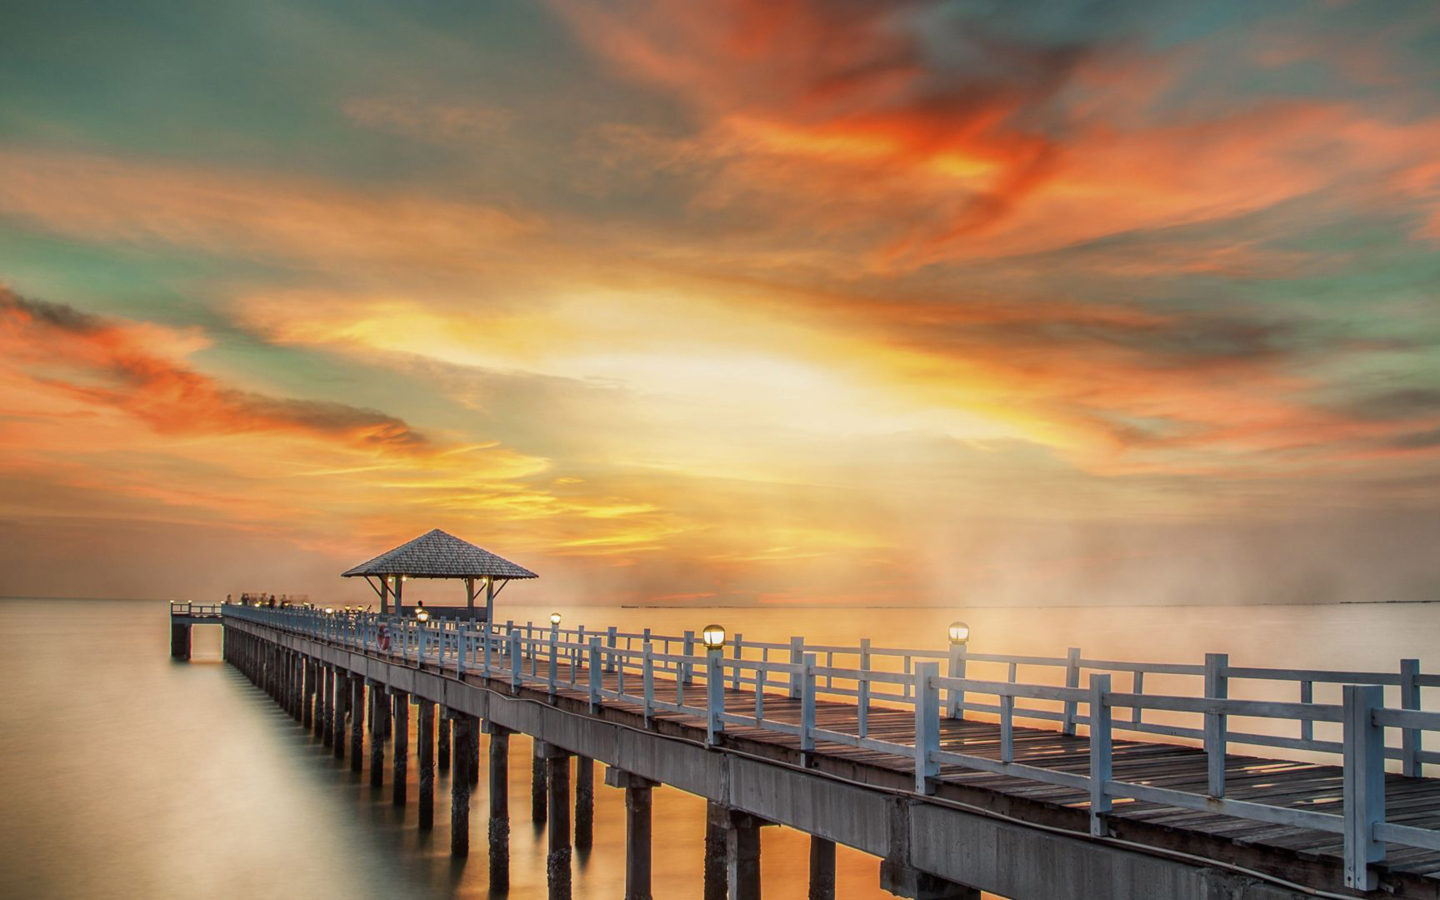 Sunset in Phuket Thailand Wooden pier fire sky red clouds Ultra HD Wallpapers for Desktop Mobile Phones and laptop 3840x2160